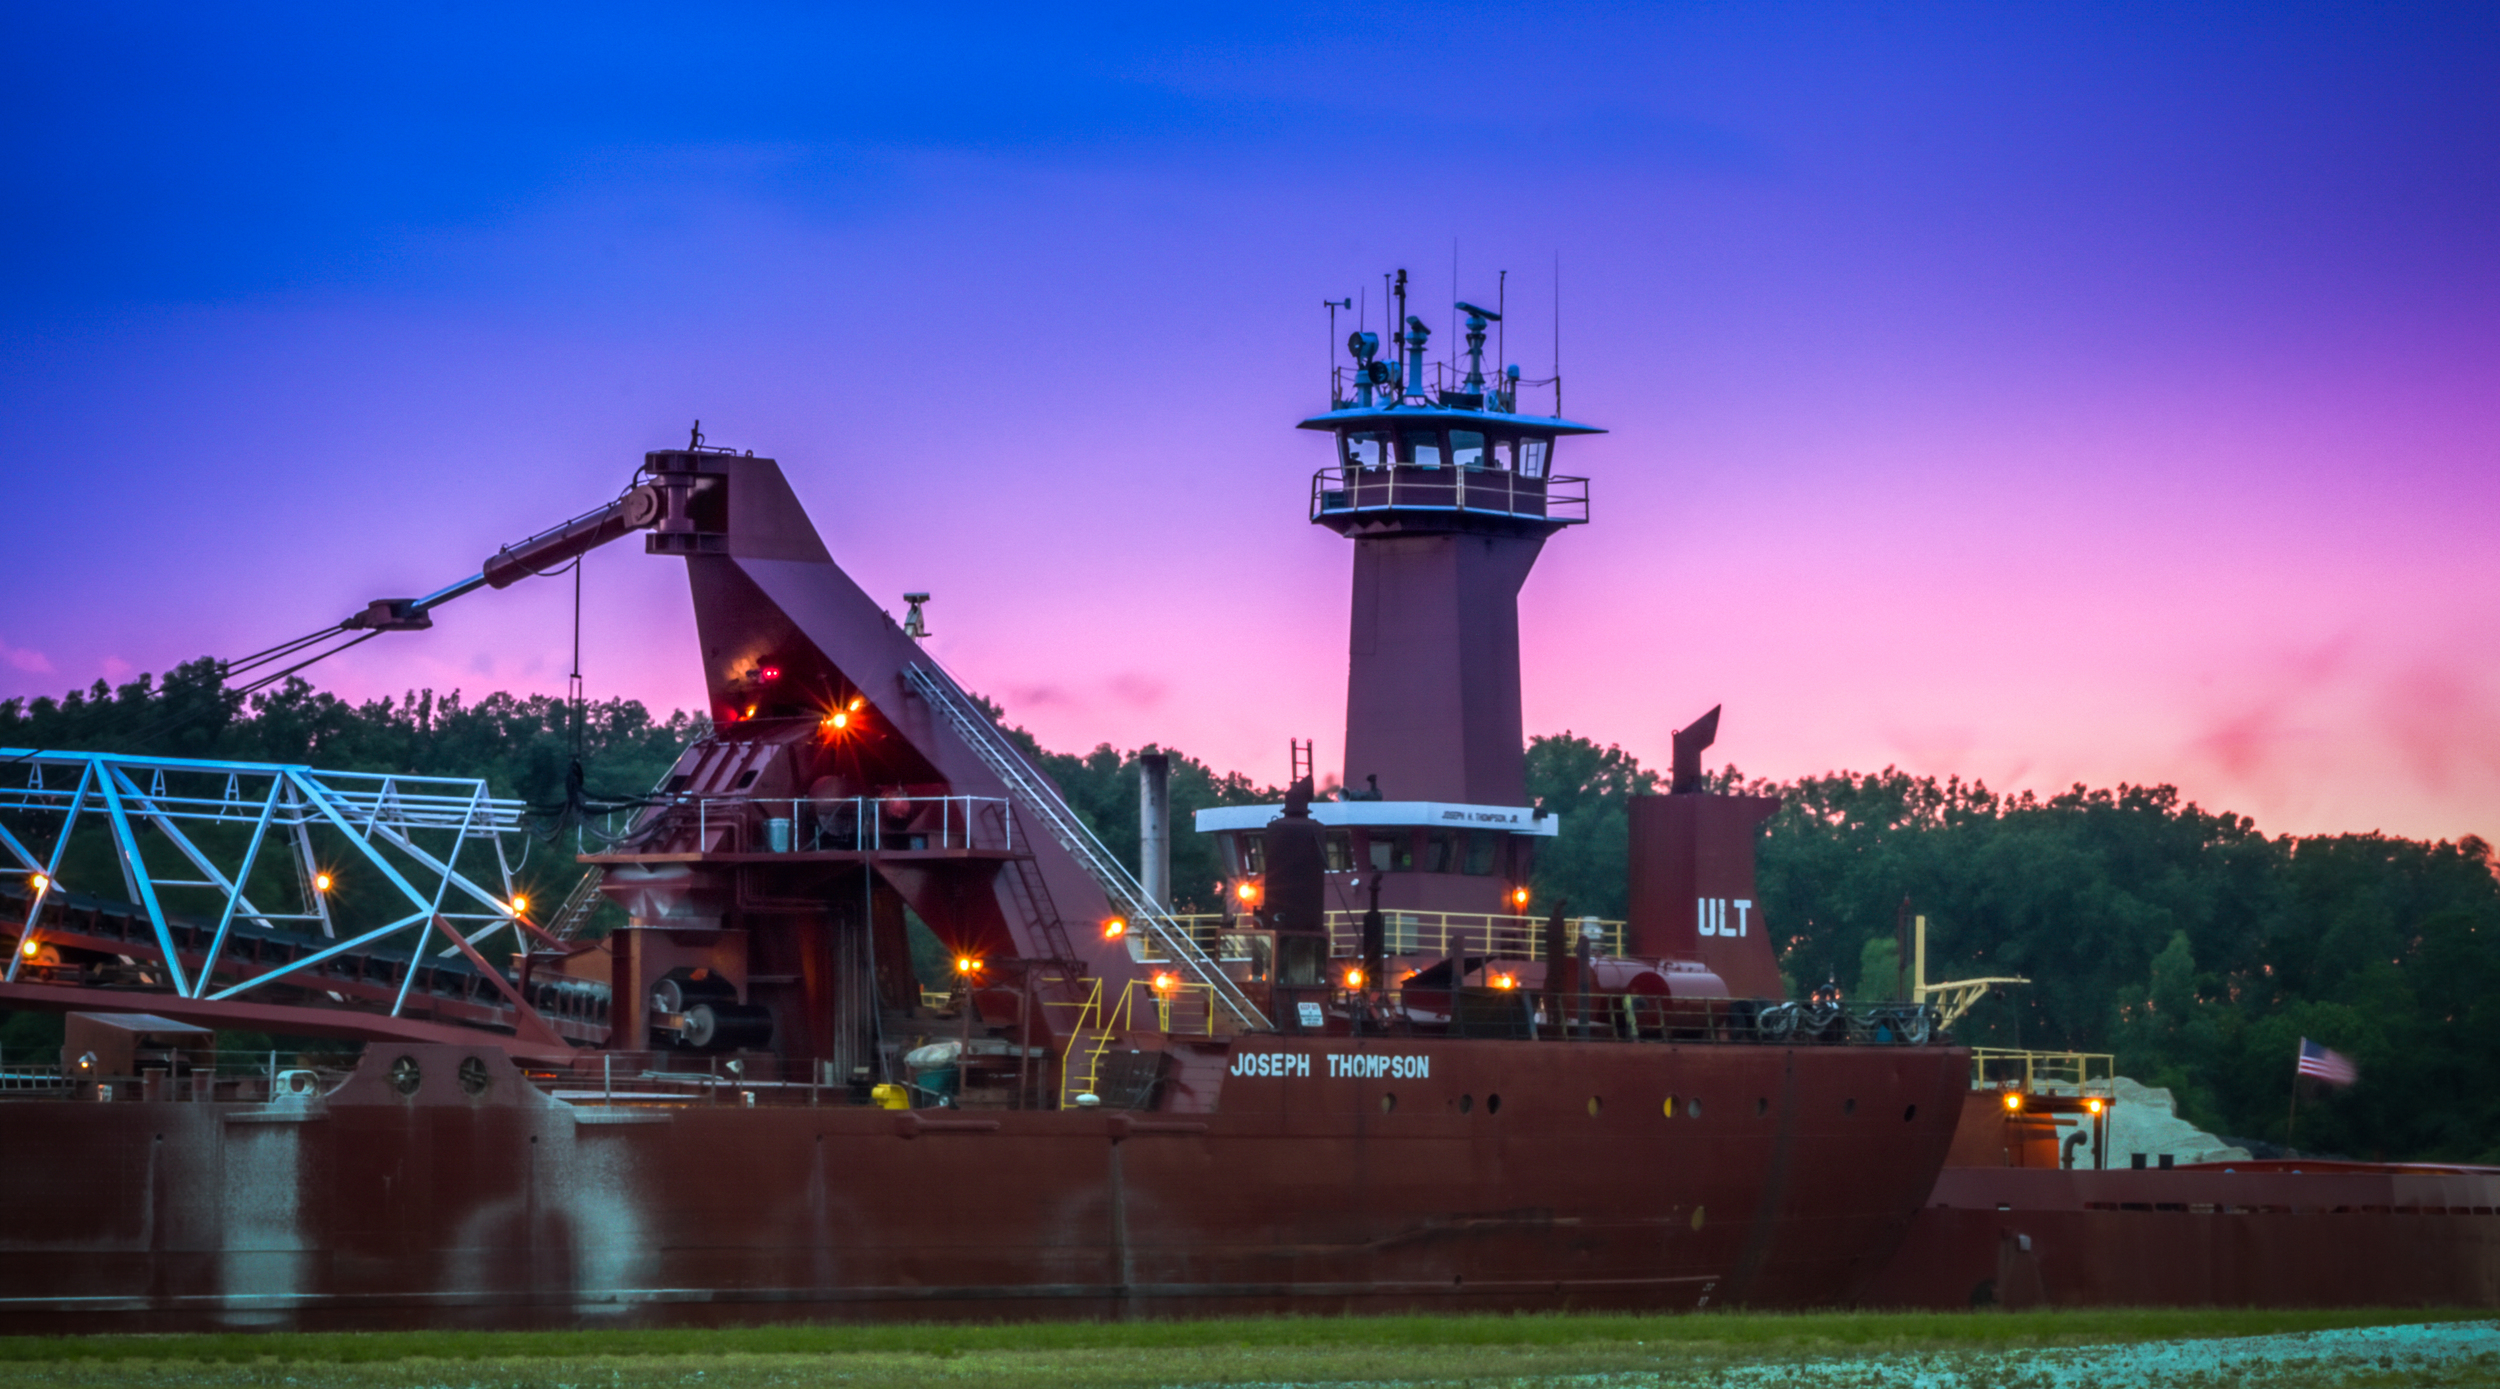 Cargo Ship on the Grand River